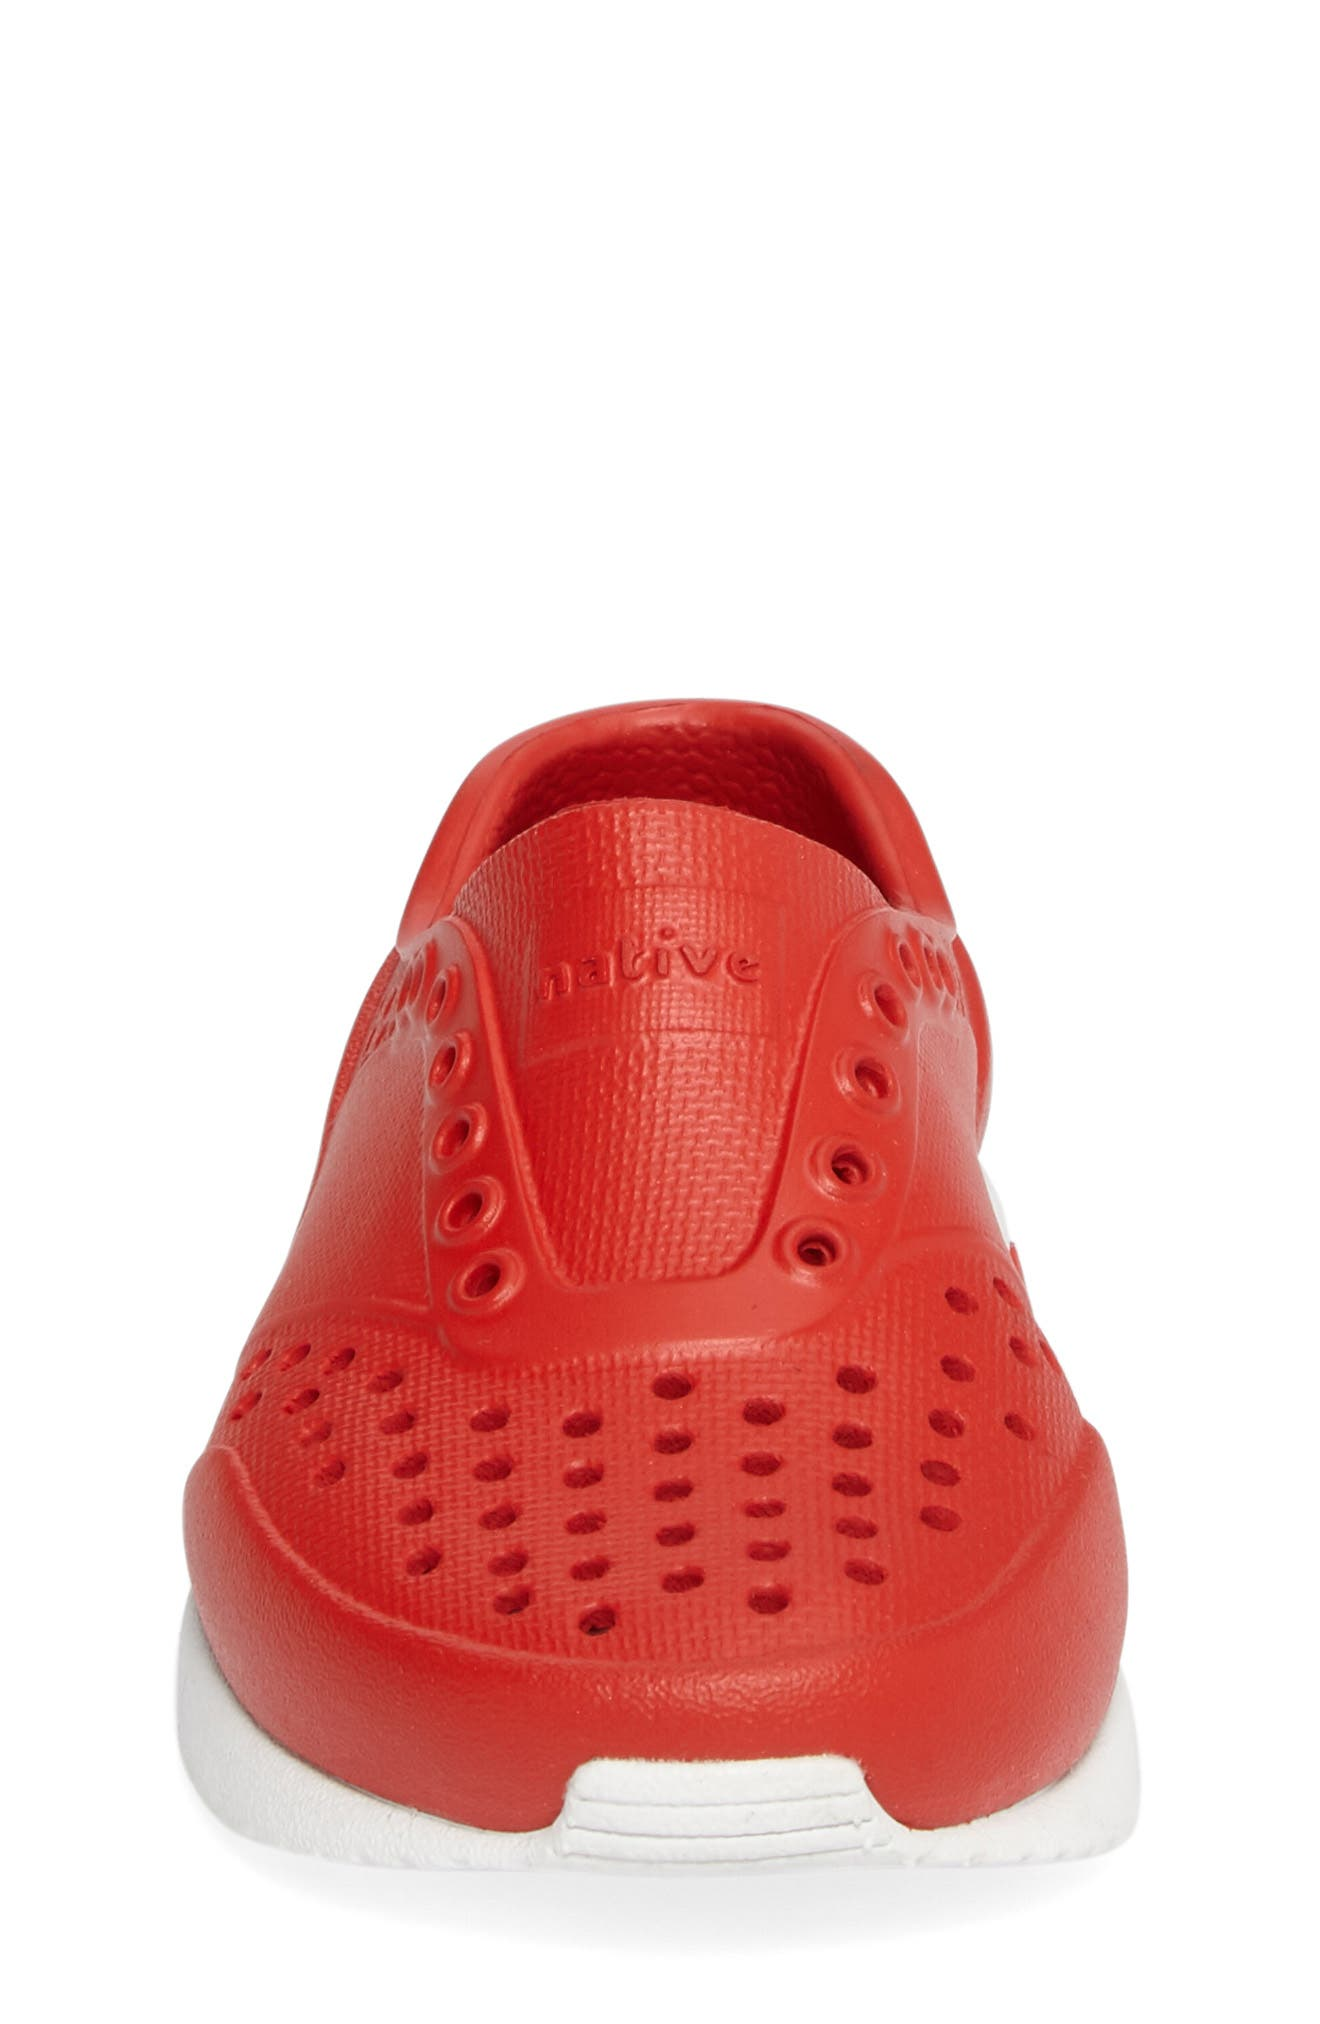 Lennox Slip-On Sneaker,                             Alternate thumbnail 16, color,